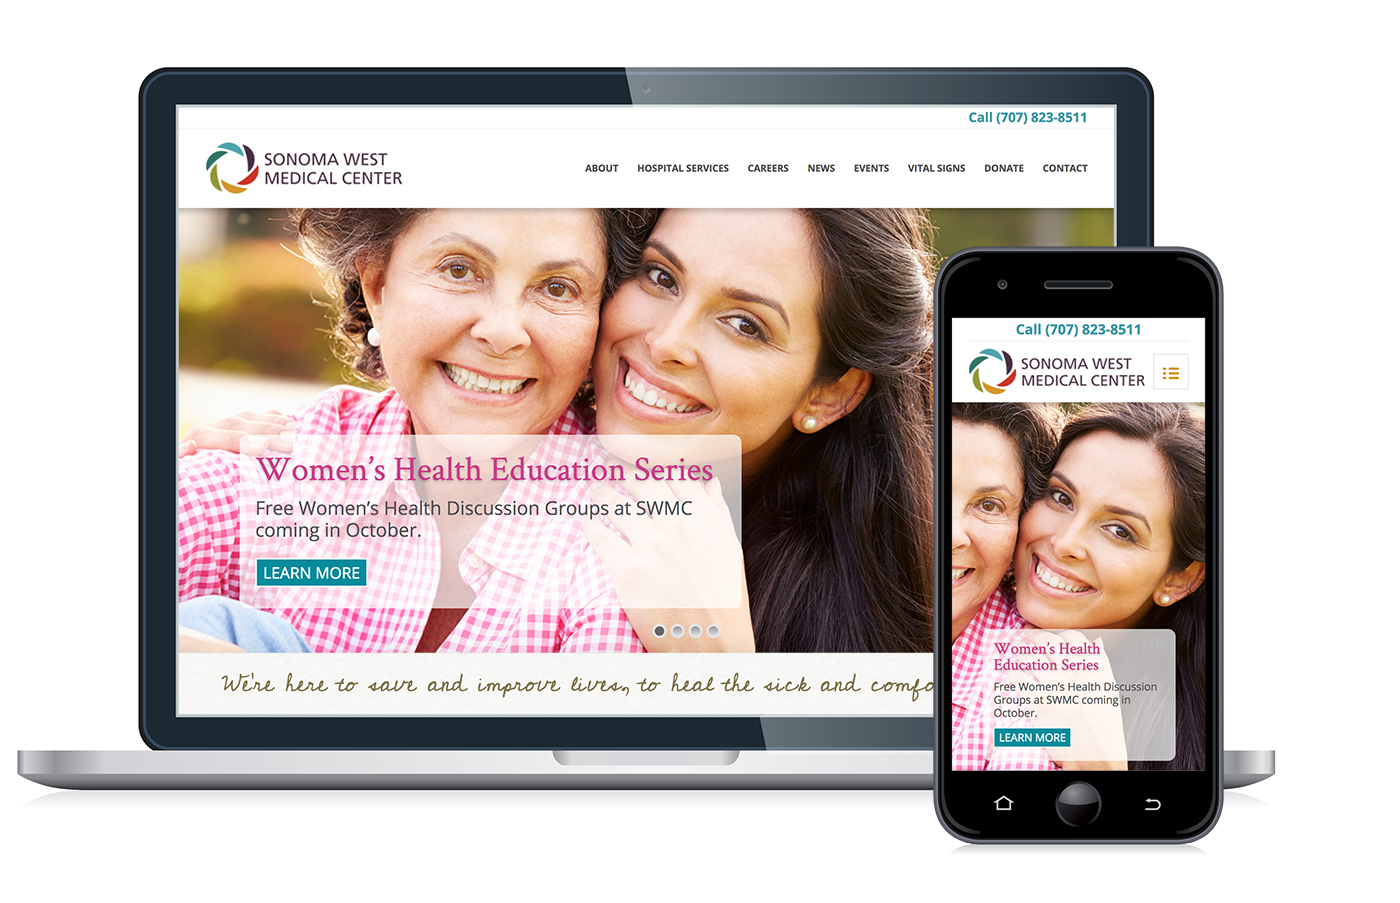 Women's Health Education Series